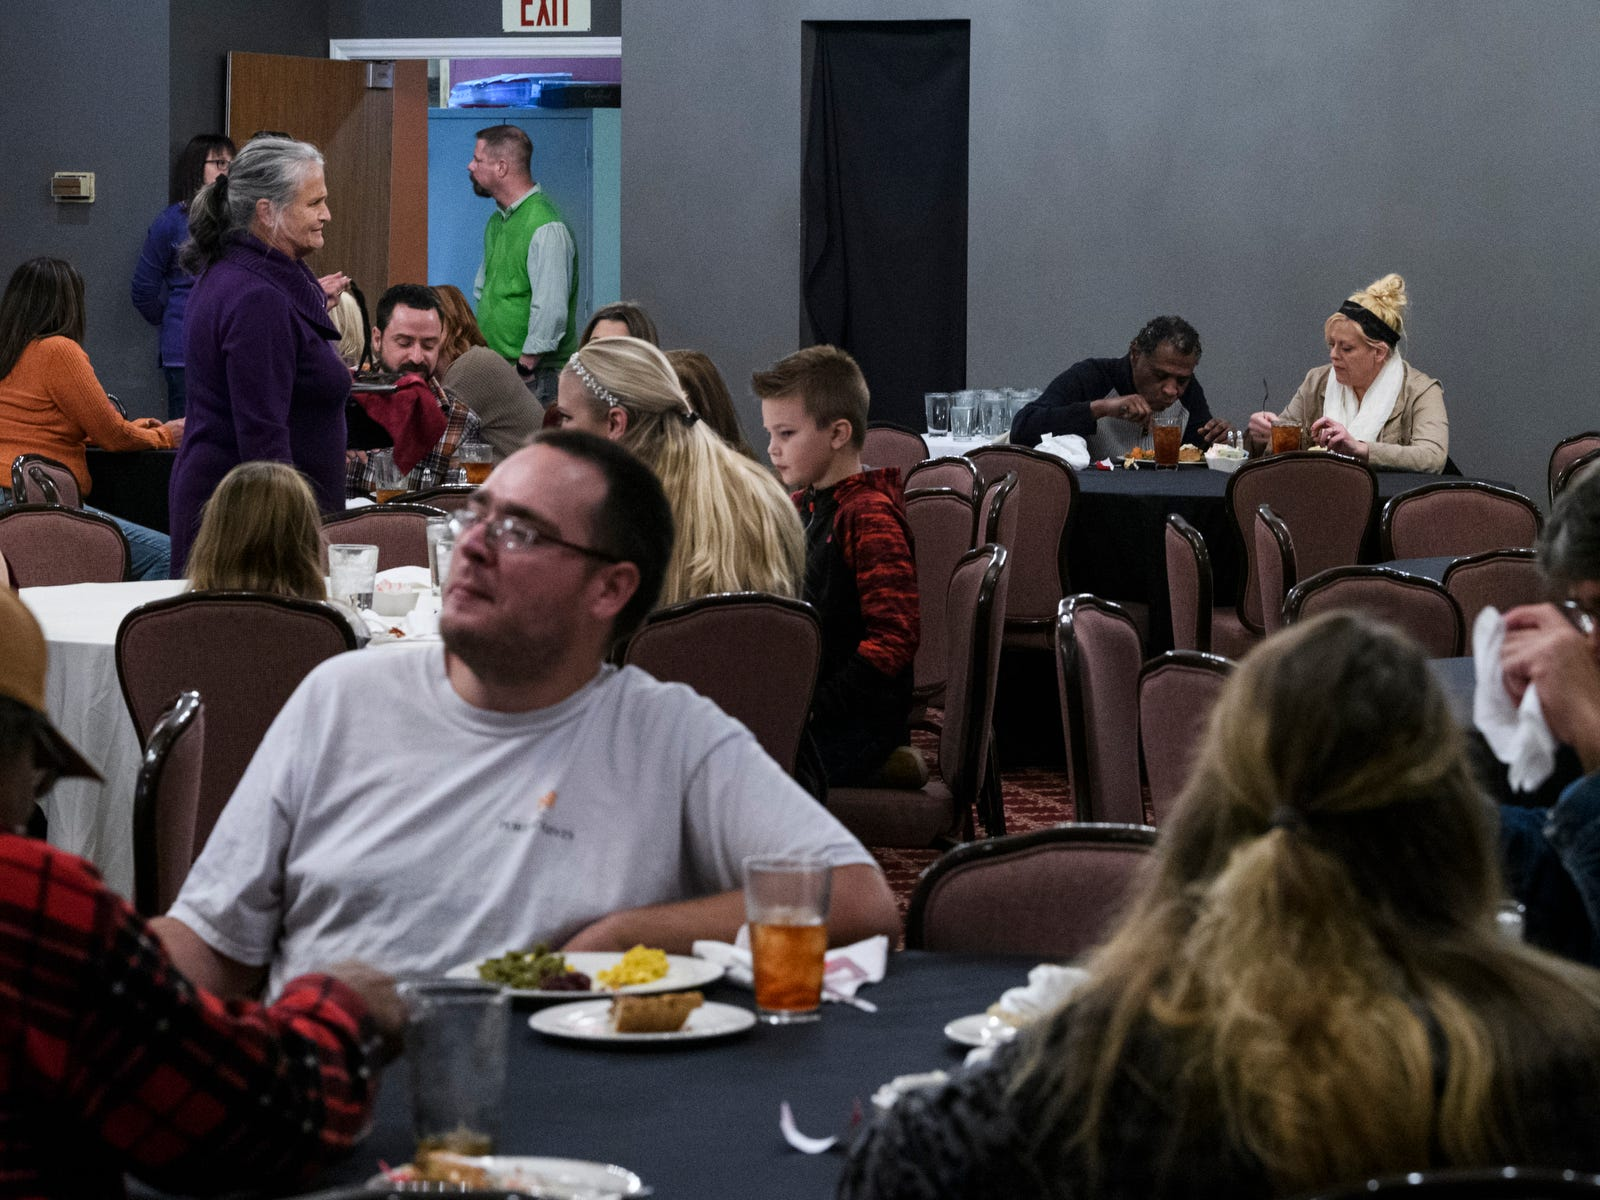 People chat as they enjoy a free thanksgiving meal at Sauced in Evansville's Haynie's Corner Arts District, Thursday afternoon, Nov. 22, 2018. Chefs from Sauced, Bokeh Lounge and Dapper Pig teamed up to offer food from 11 a.m. to 3 p.m. on the Thanksgiving holiday.